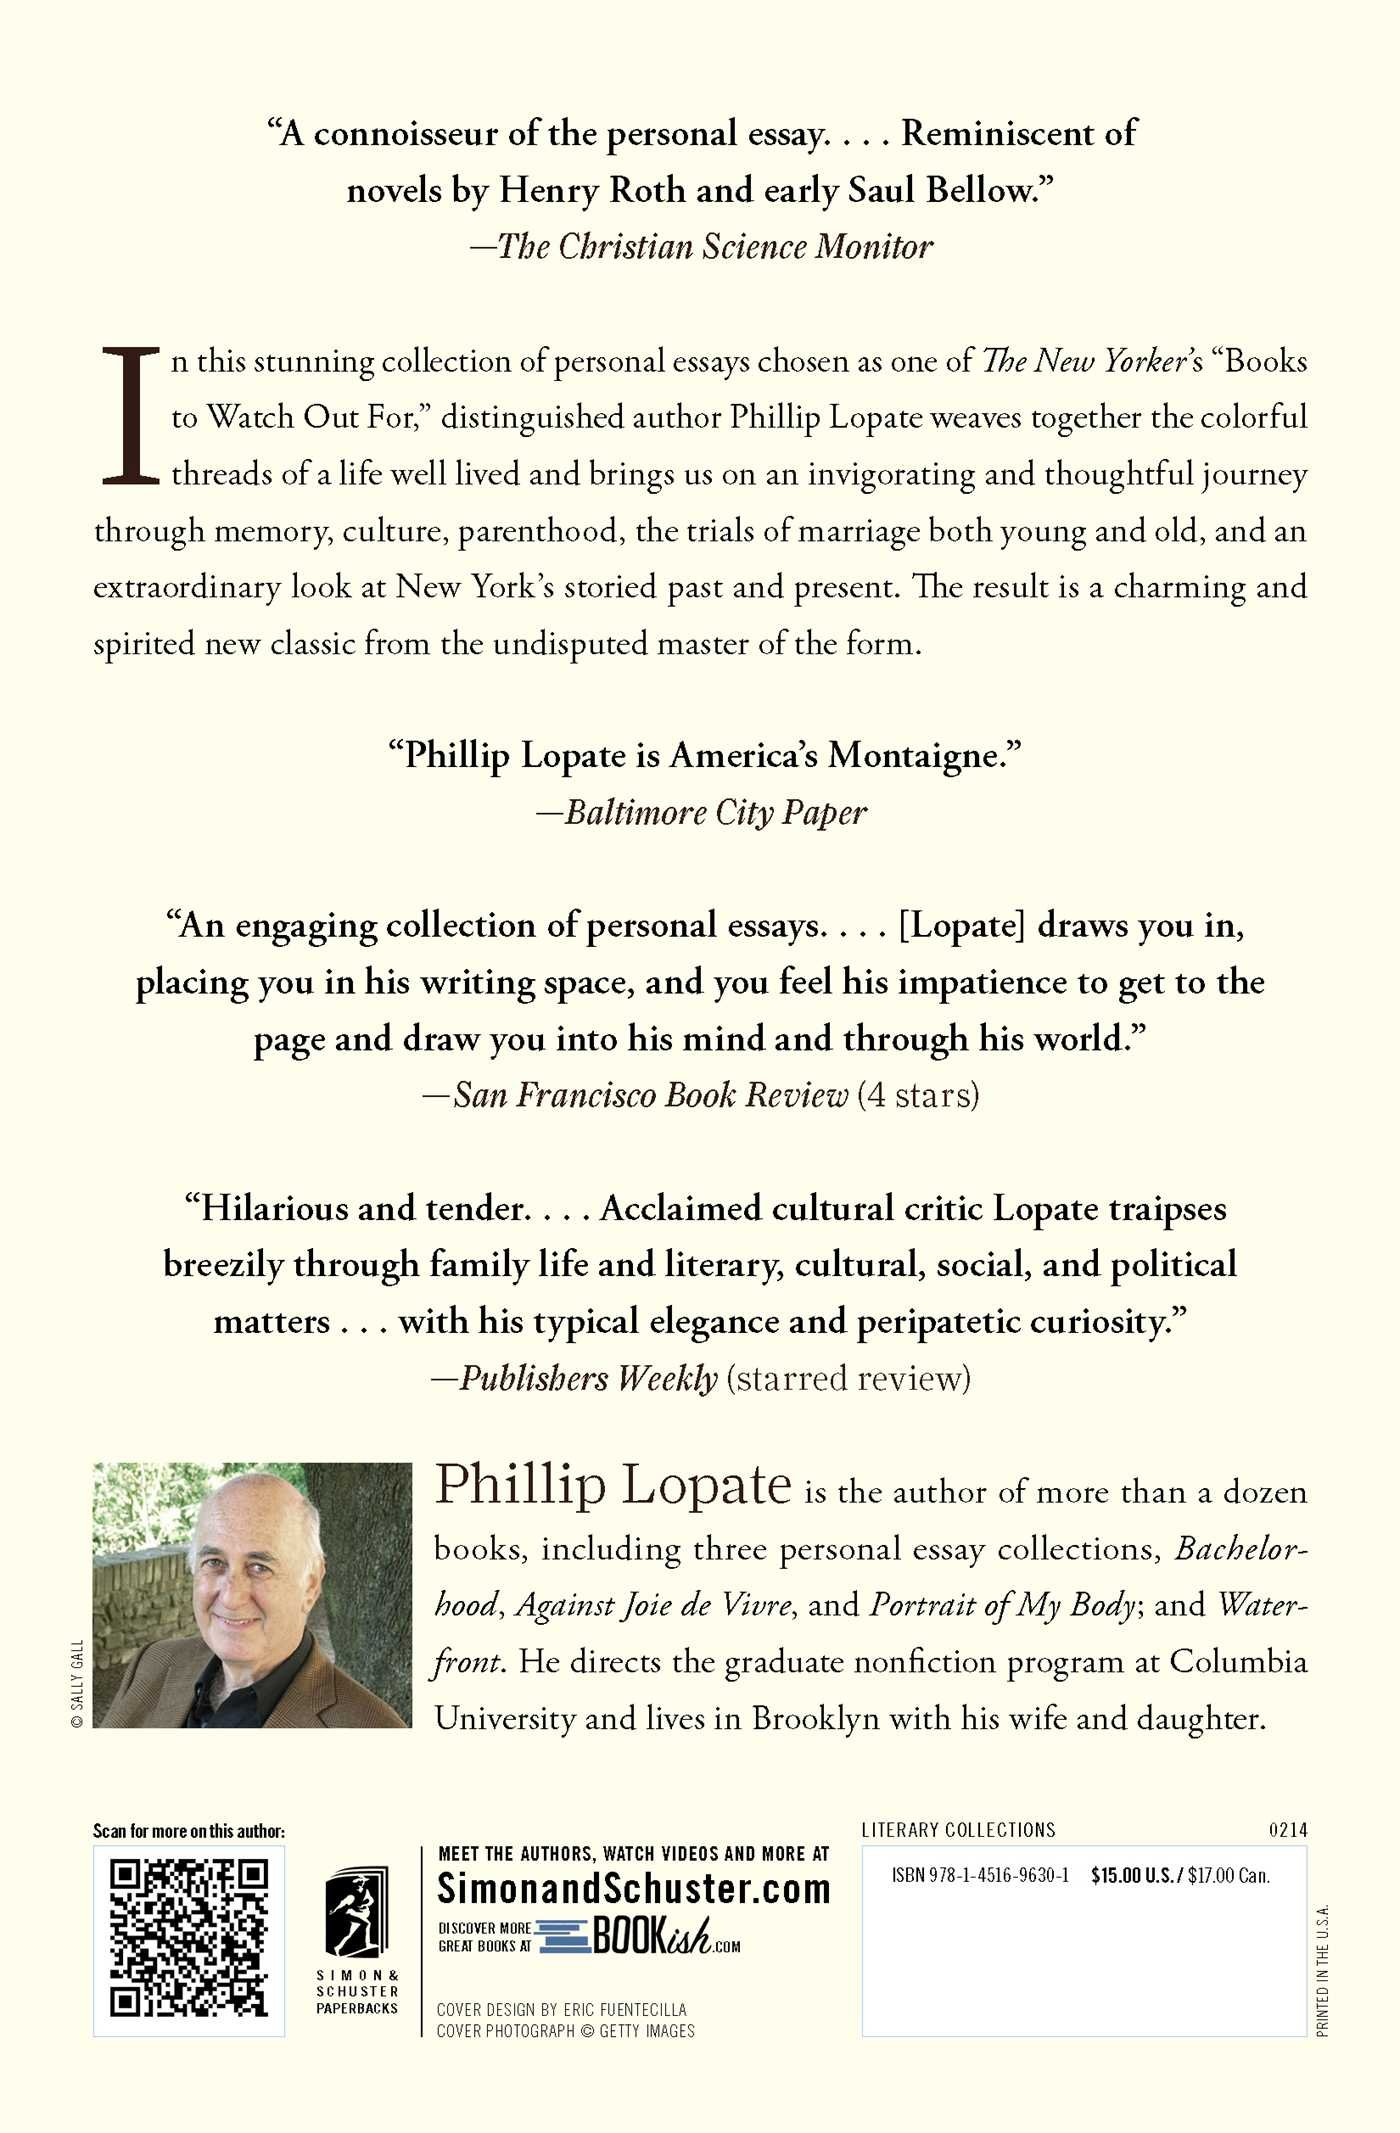 life in america essay best ideas about cause and effect essay  portrait inside my head essays phillip lopate 9781451696301 portrait inside my head essays phillip lopate 9781451696301